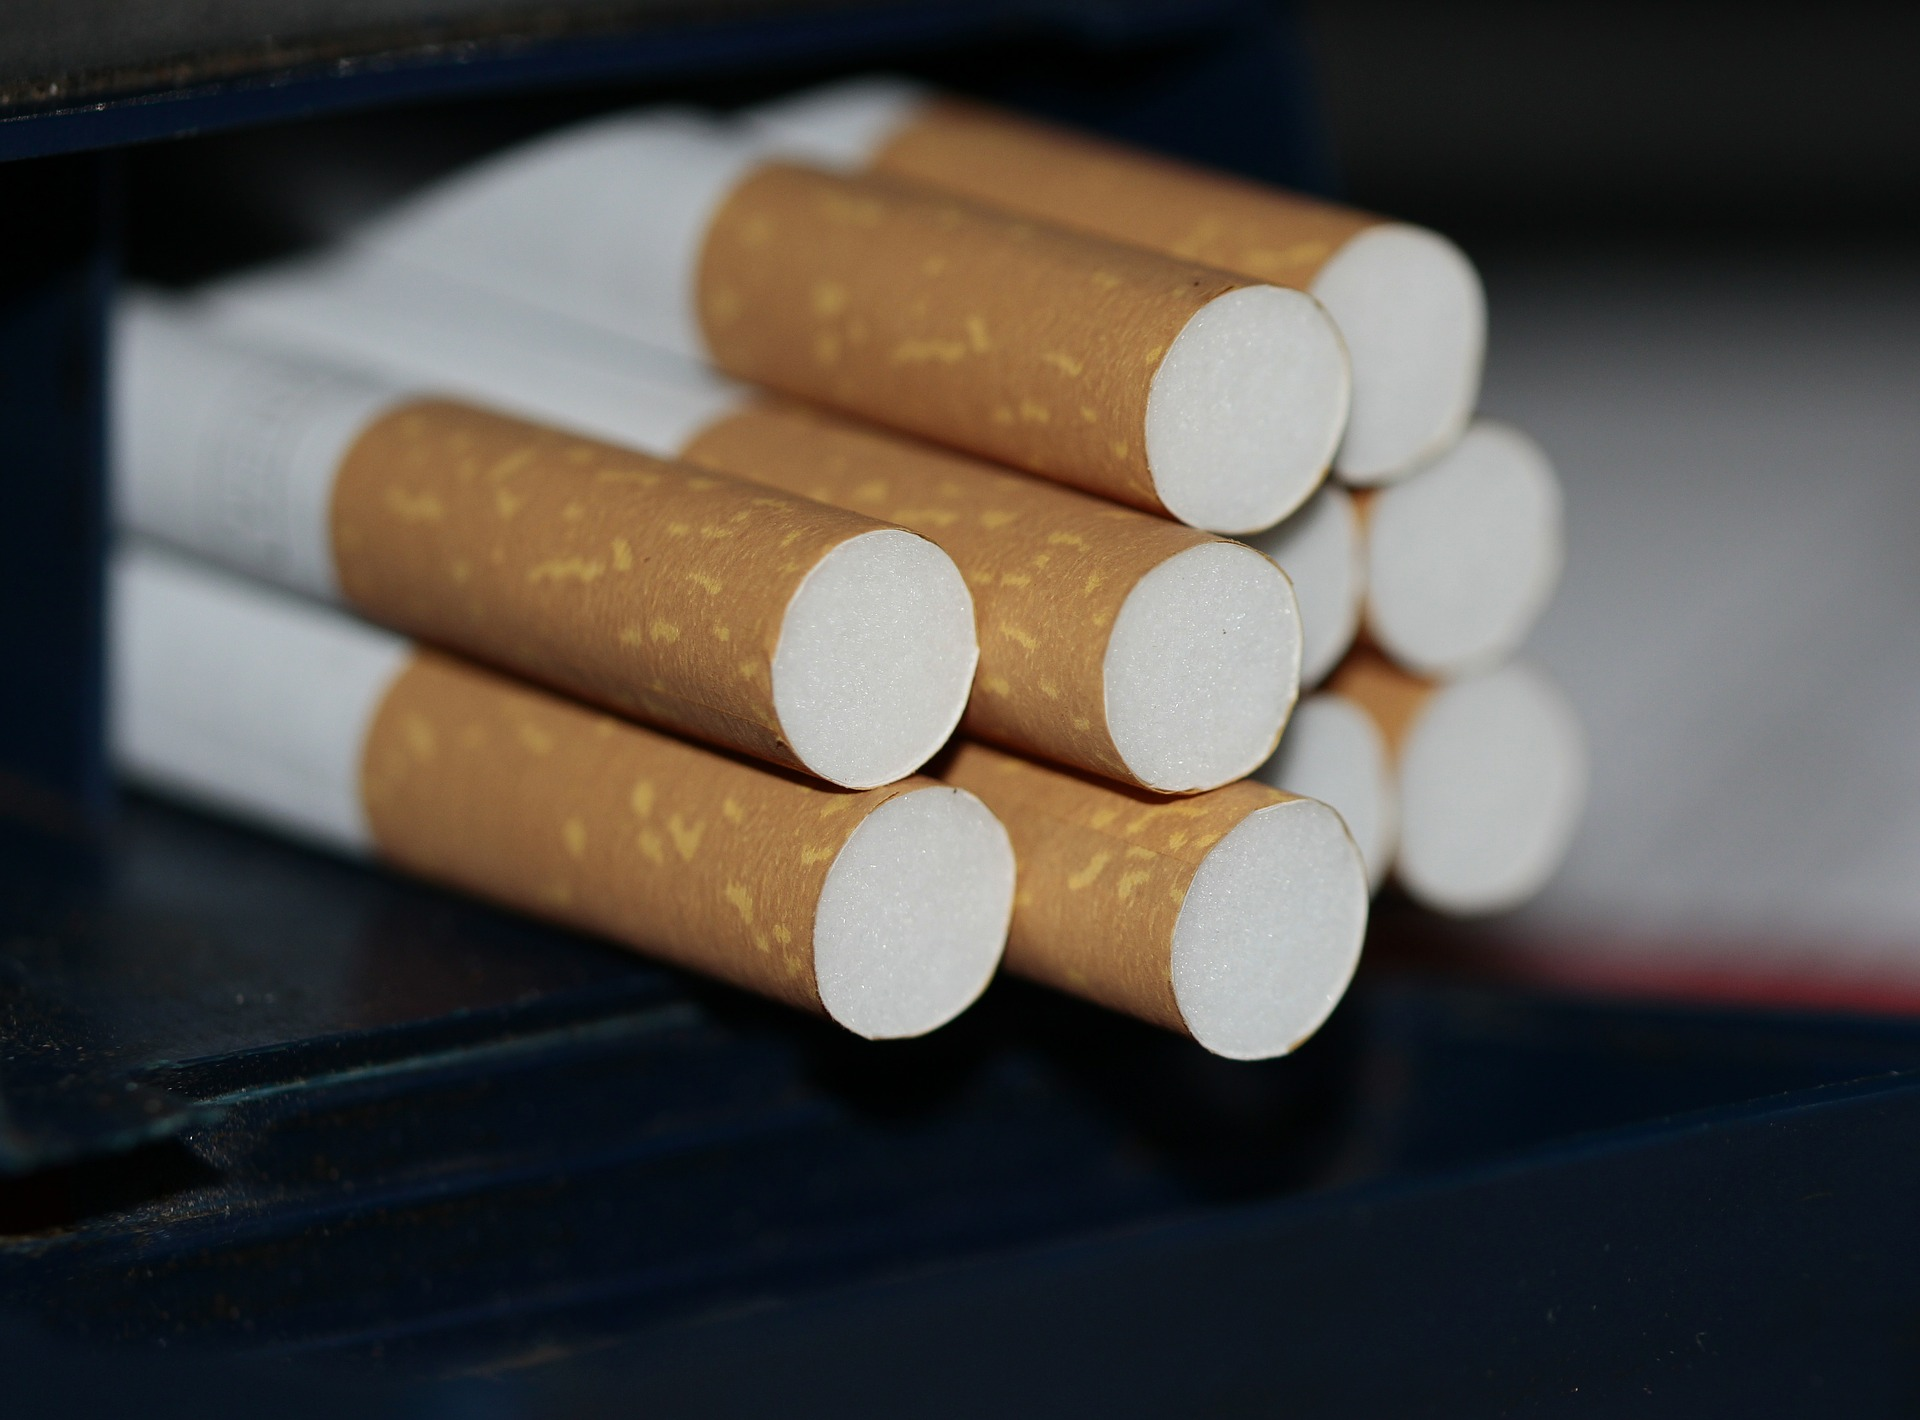 EC Refers Hungary to CJEU over Too Low Cigarette Excise Tax post's picture